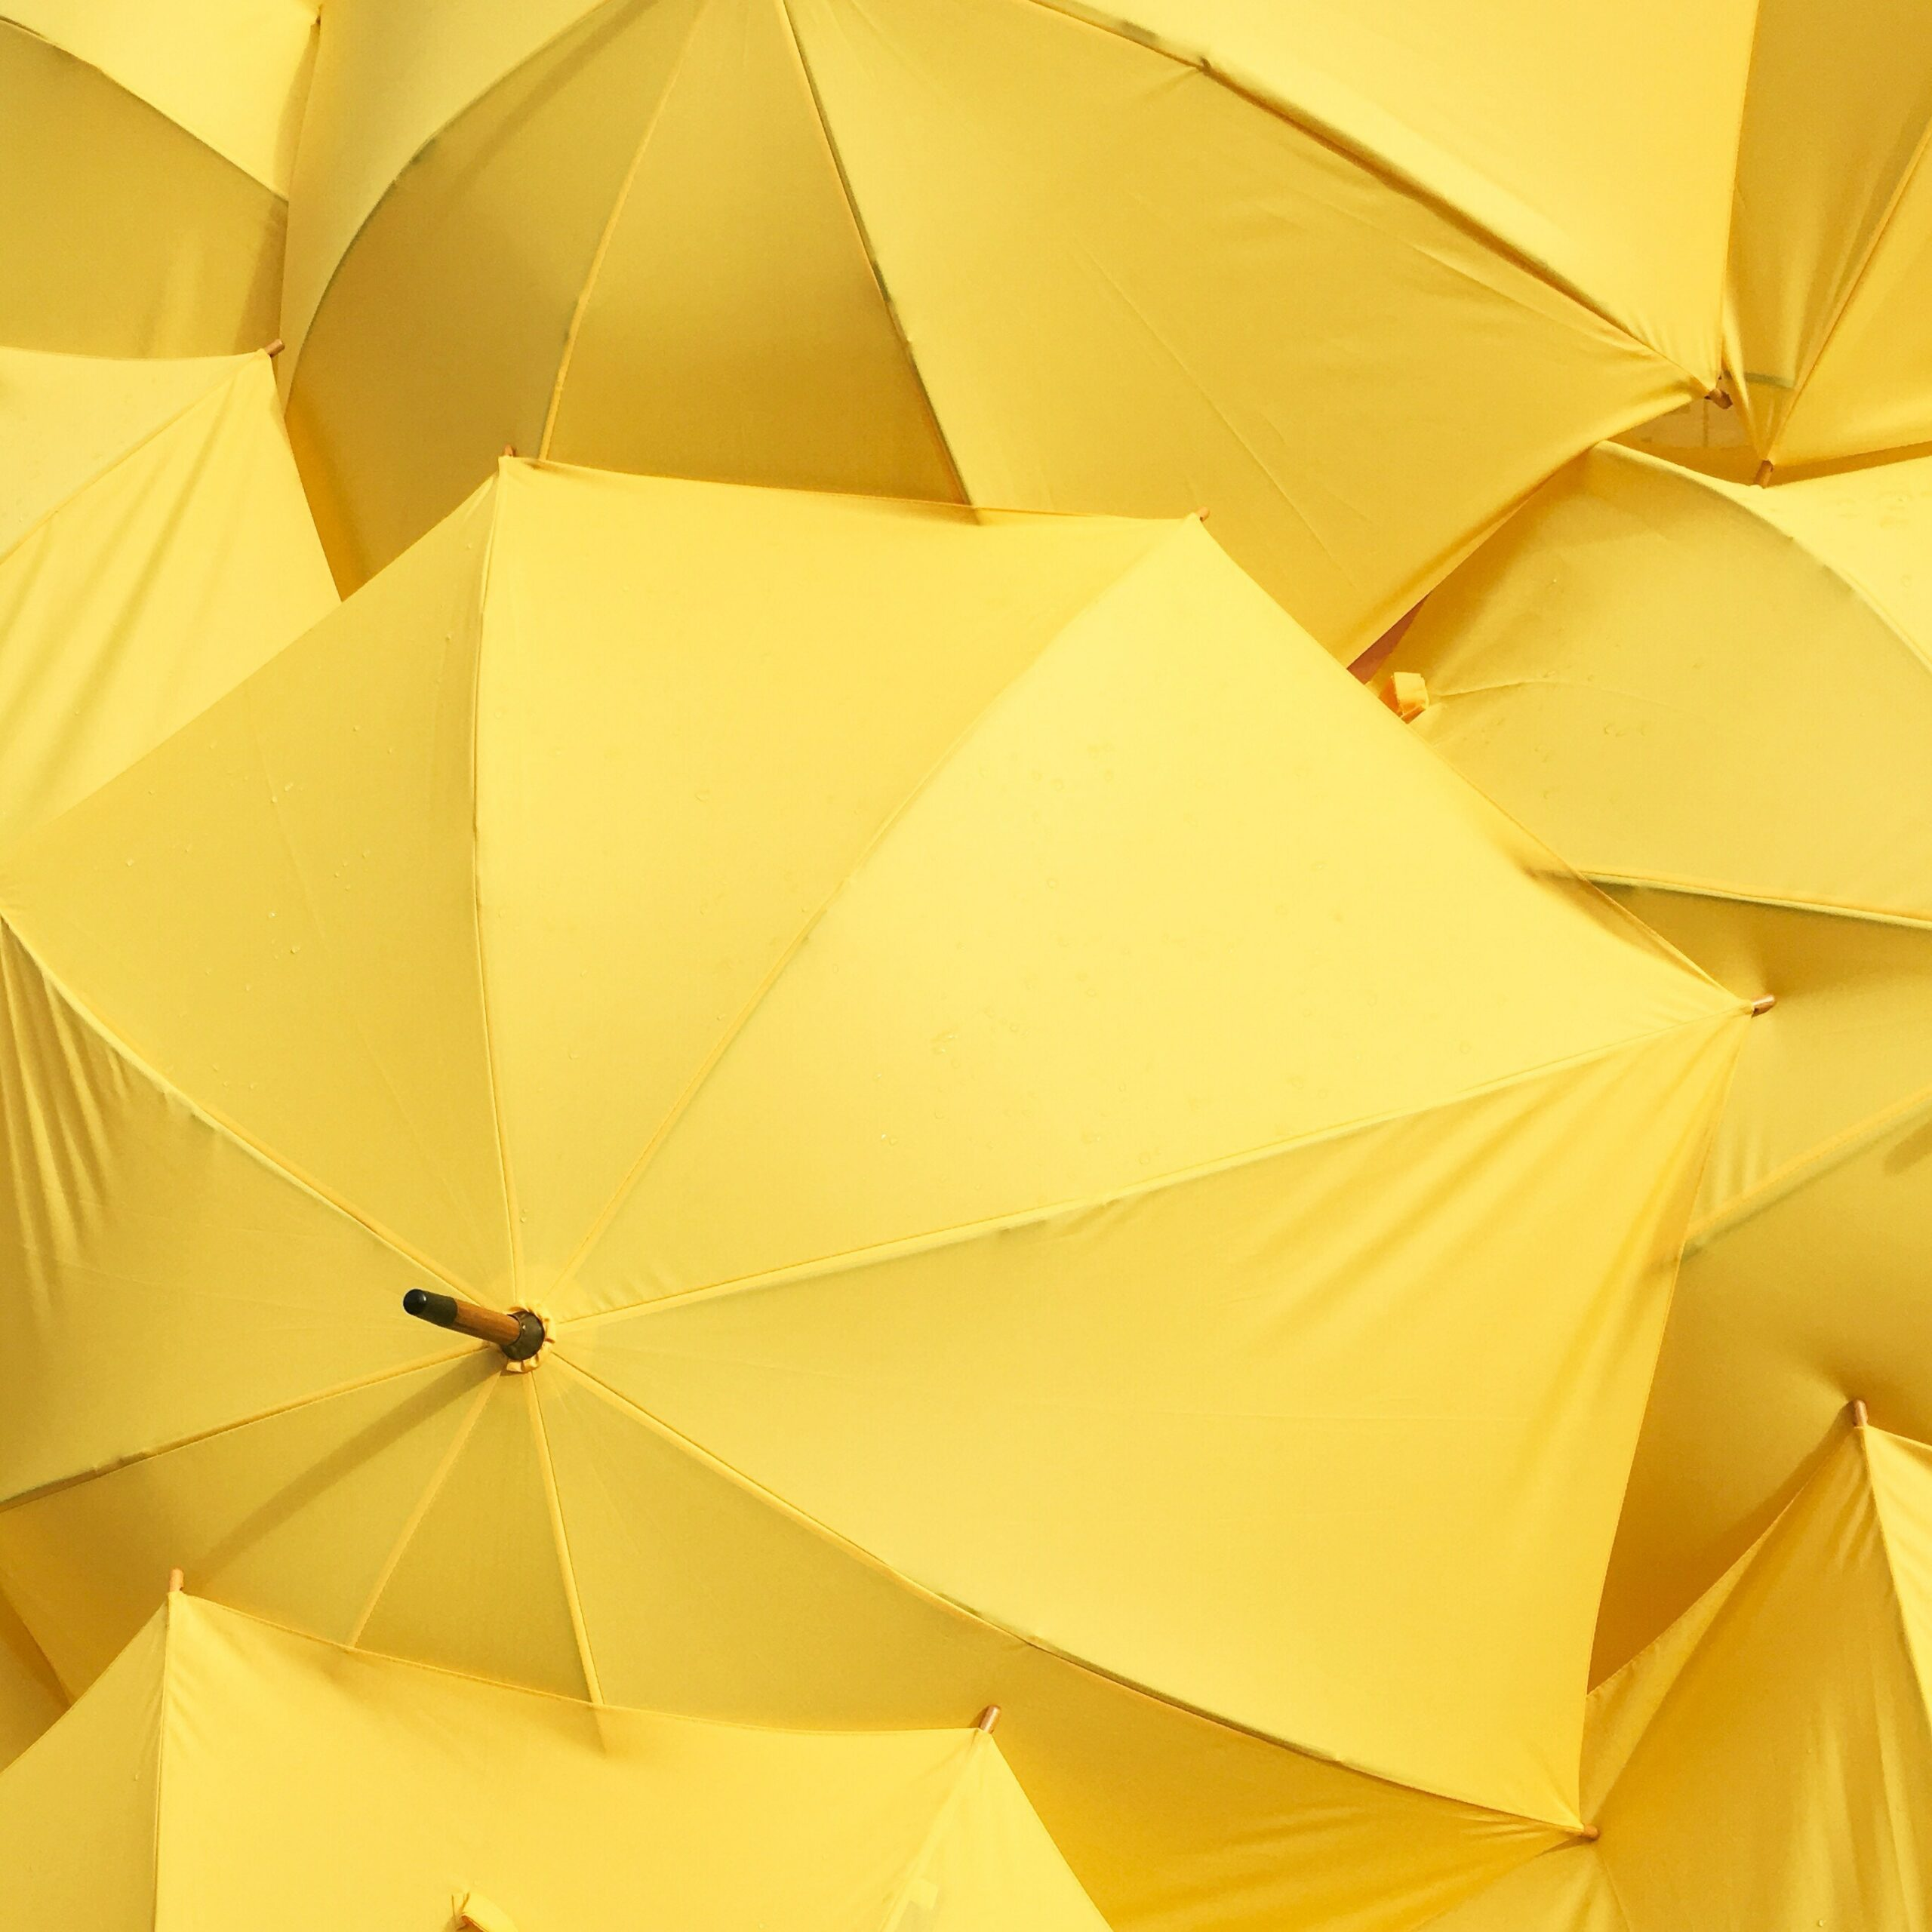 yellow-umbrellas